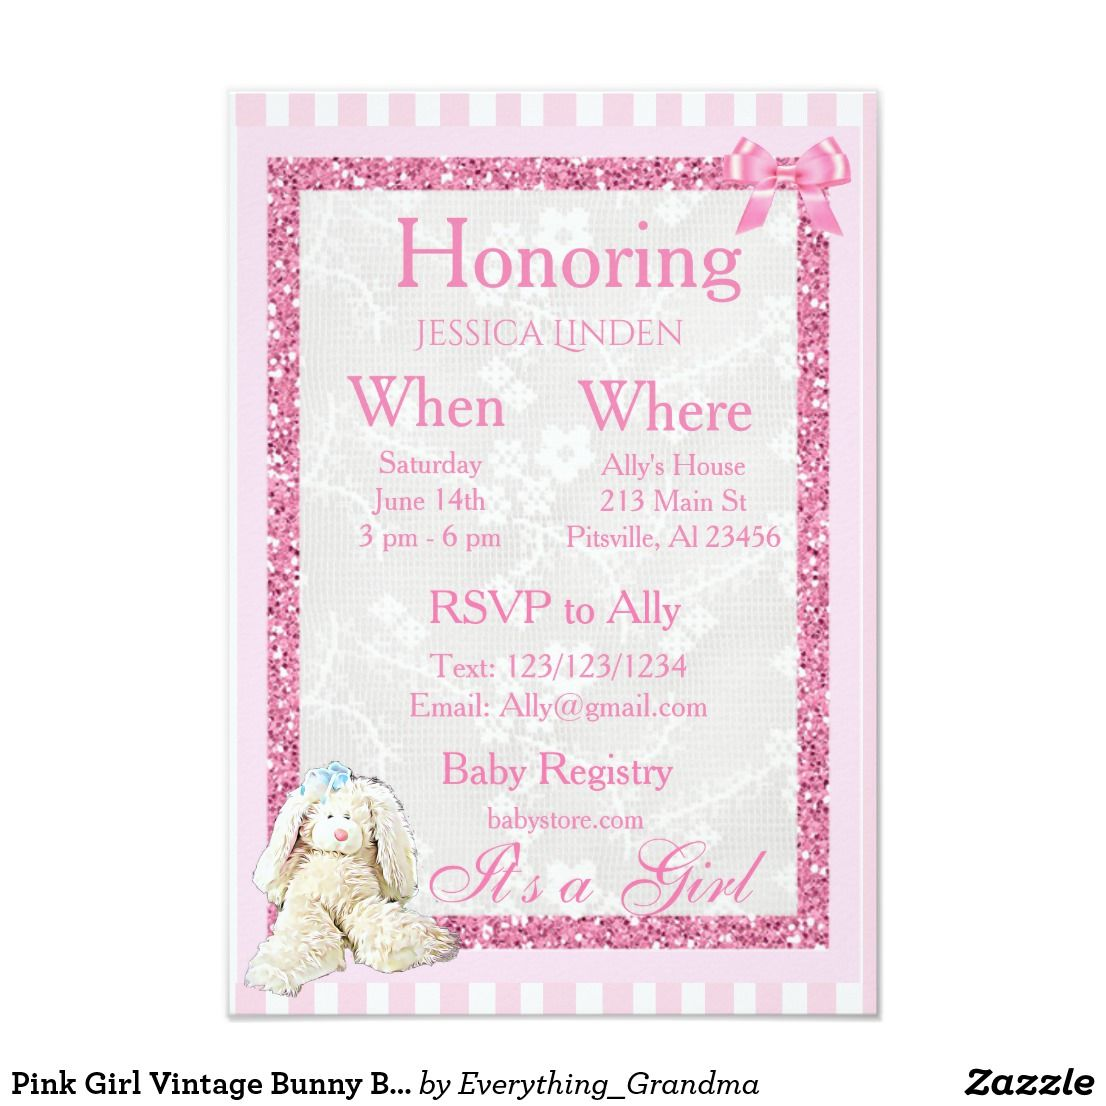 Pink Girl Vintage Bunny Baby Shower Invitation | Baby Girl Shower ...